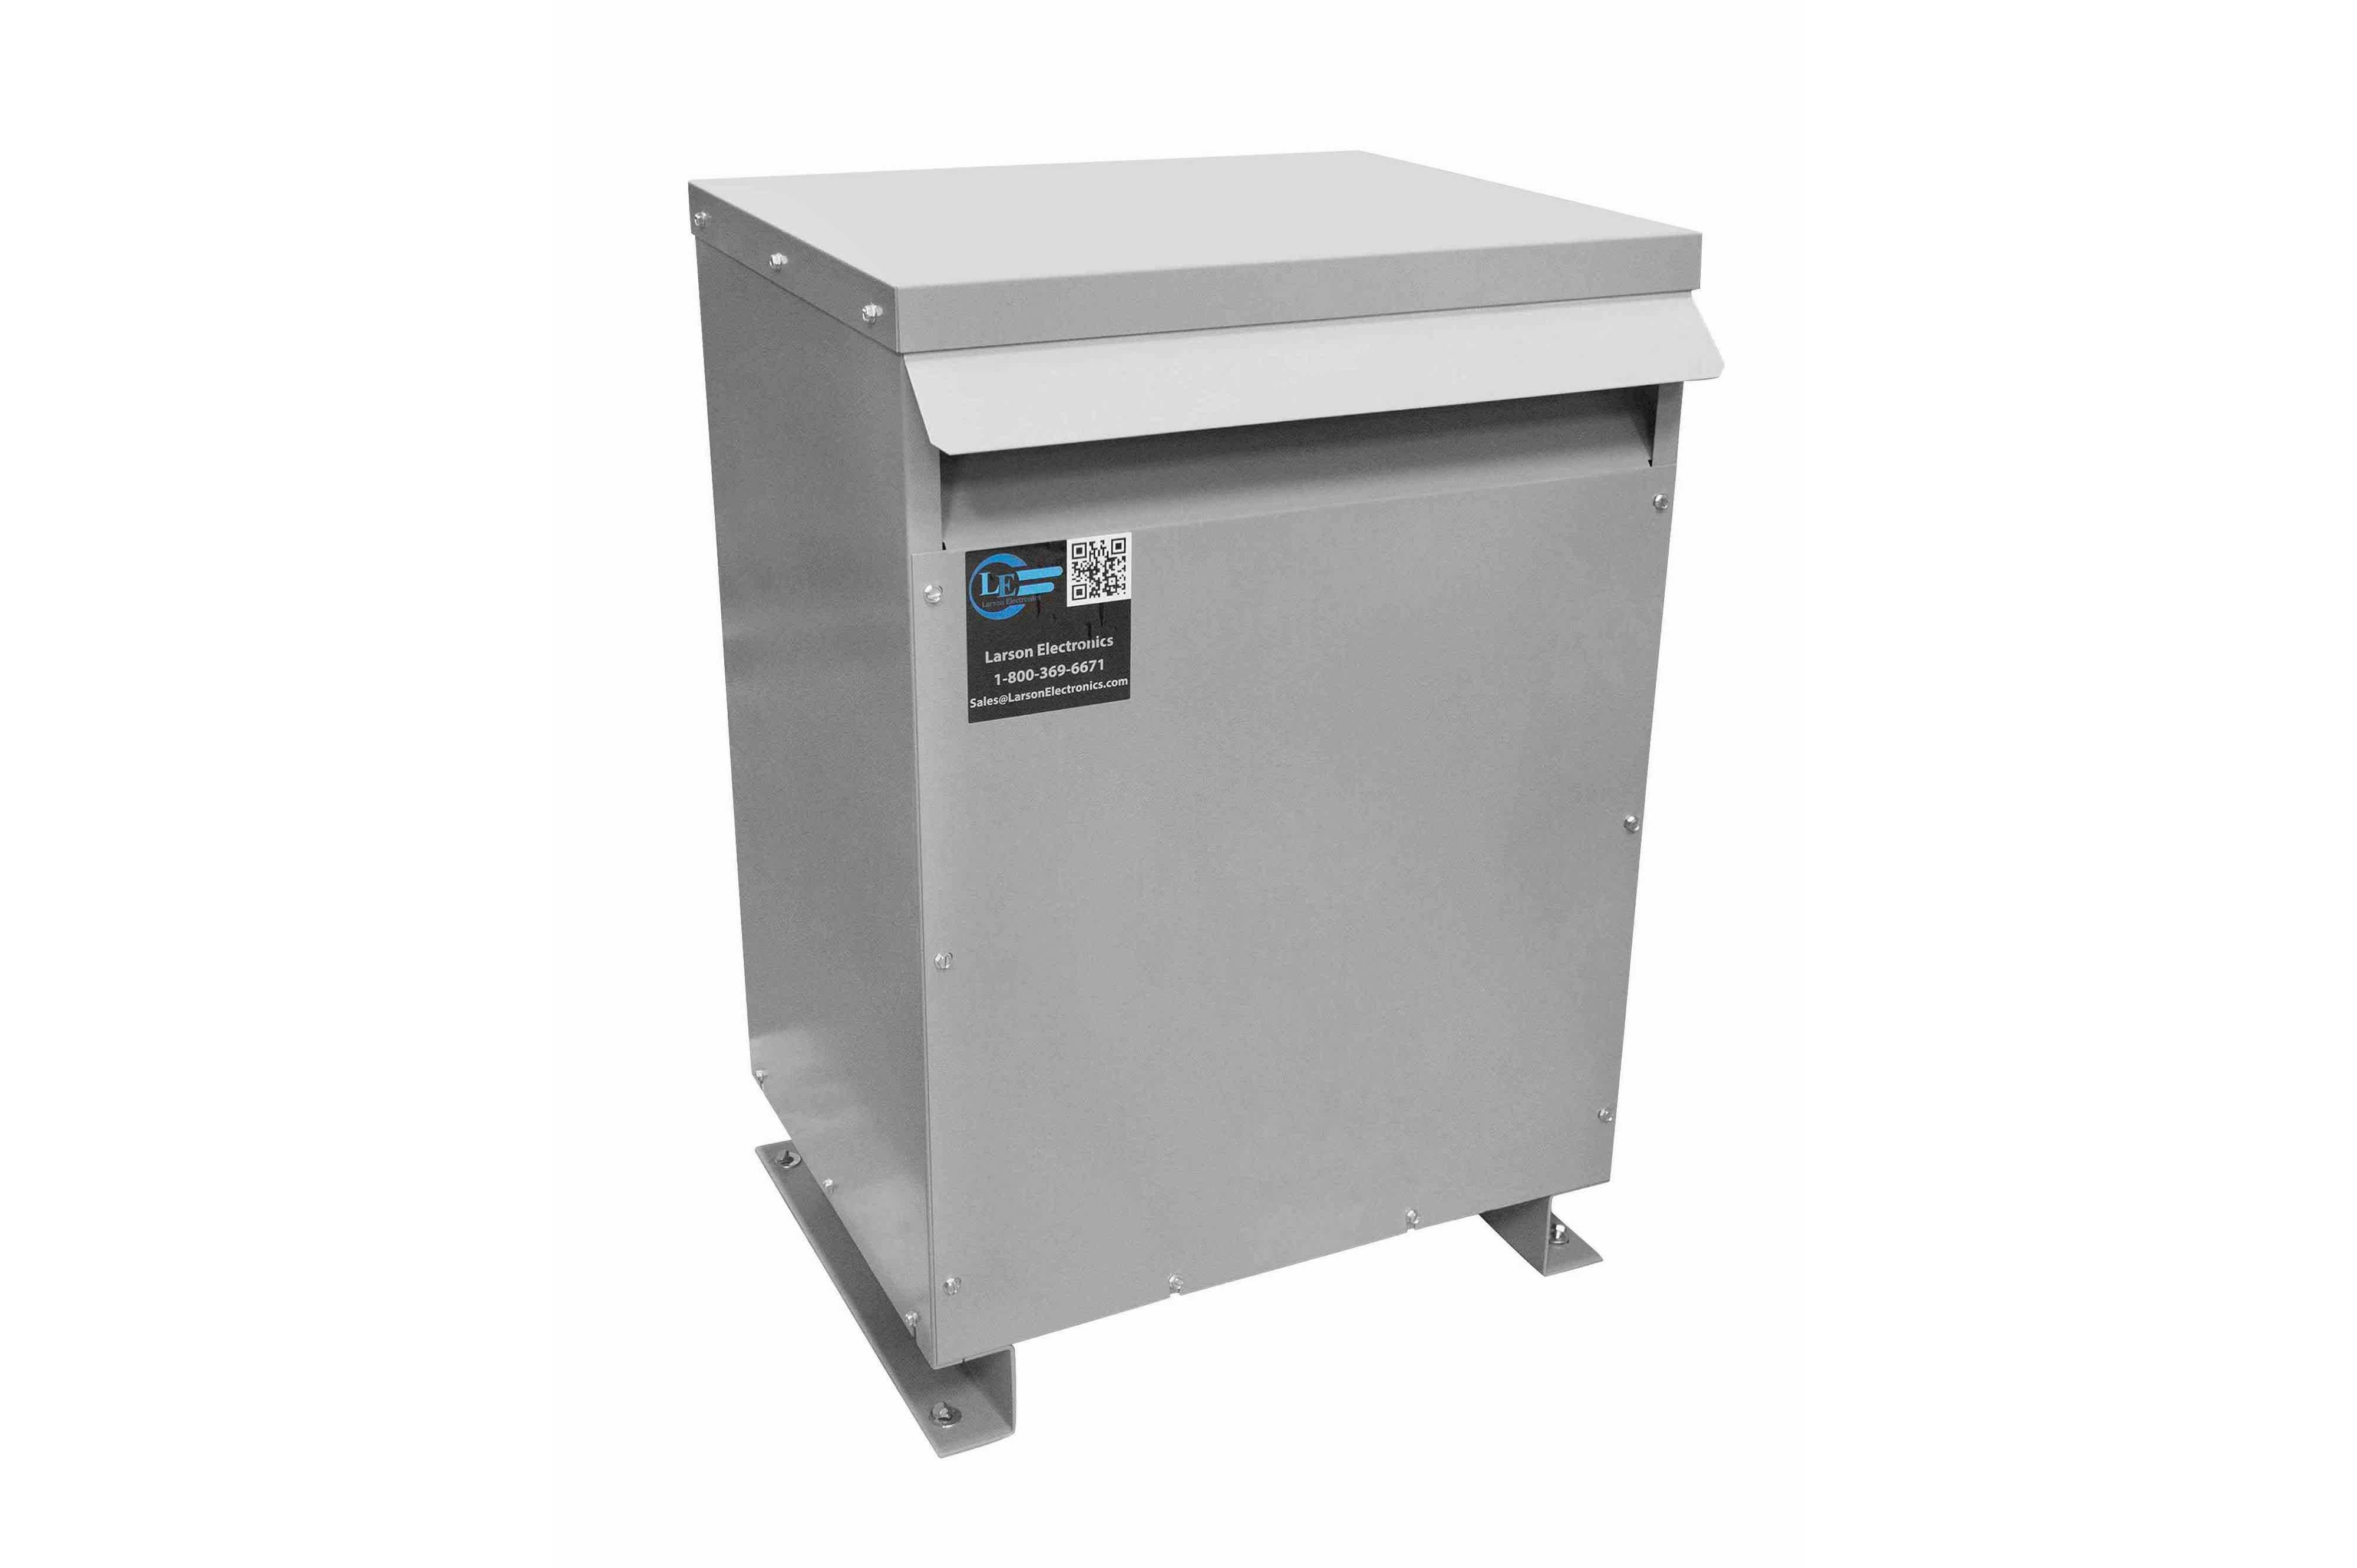 32.5 kVA 3PH Isolation Transformer, 400V Delta Primary, 600V Delta Secondary, N3R, Ventilated, 60 Hz